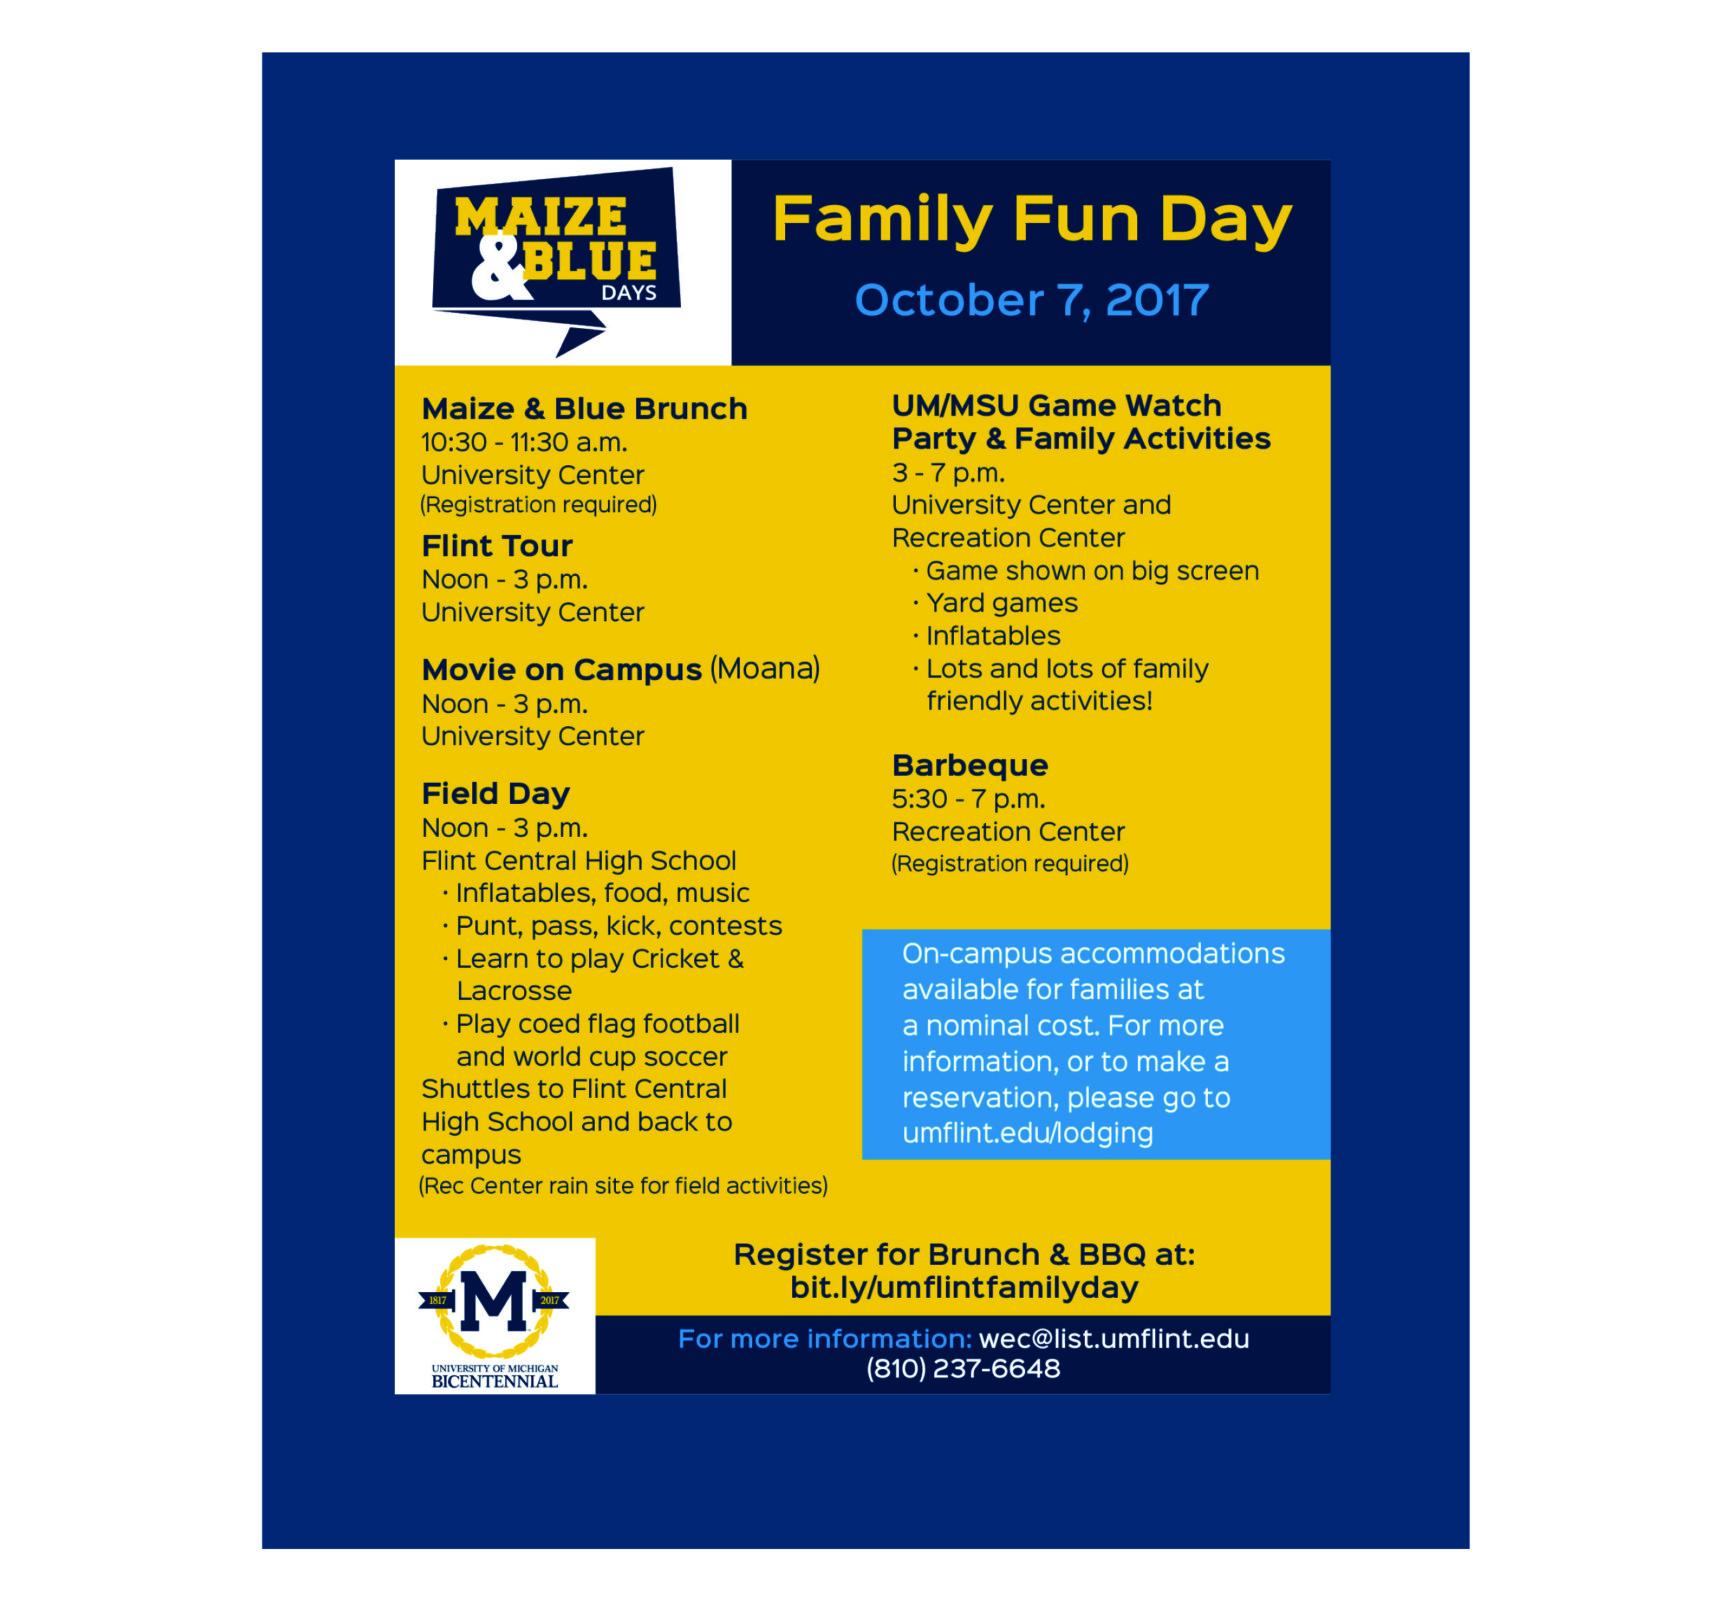 Family Fun Day is October 7, 2017